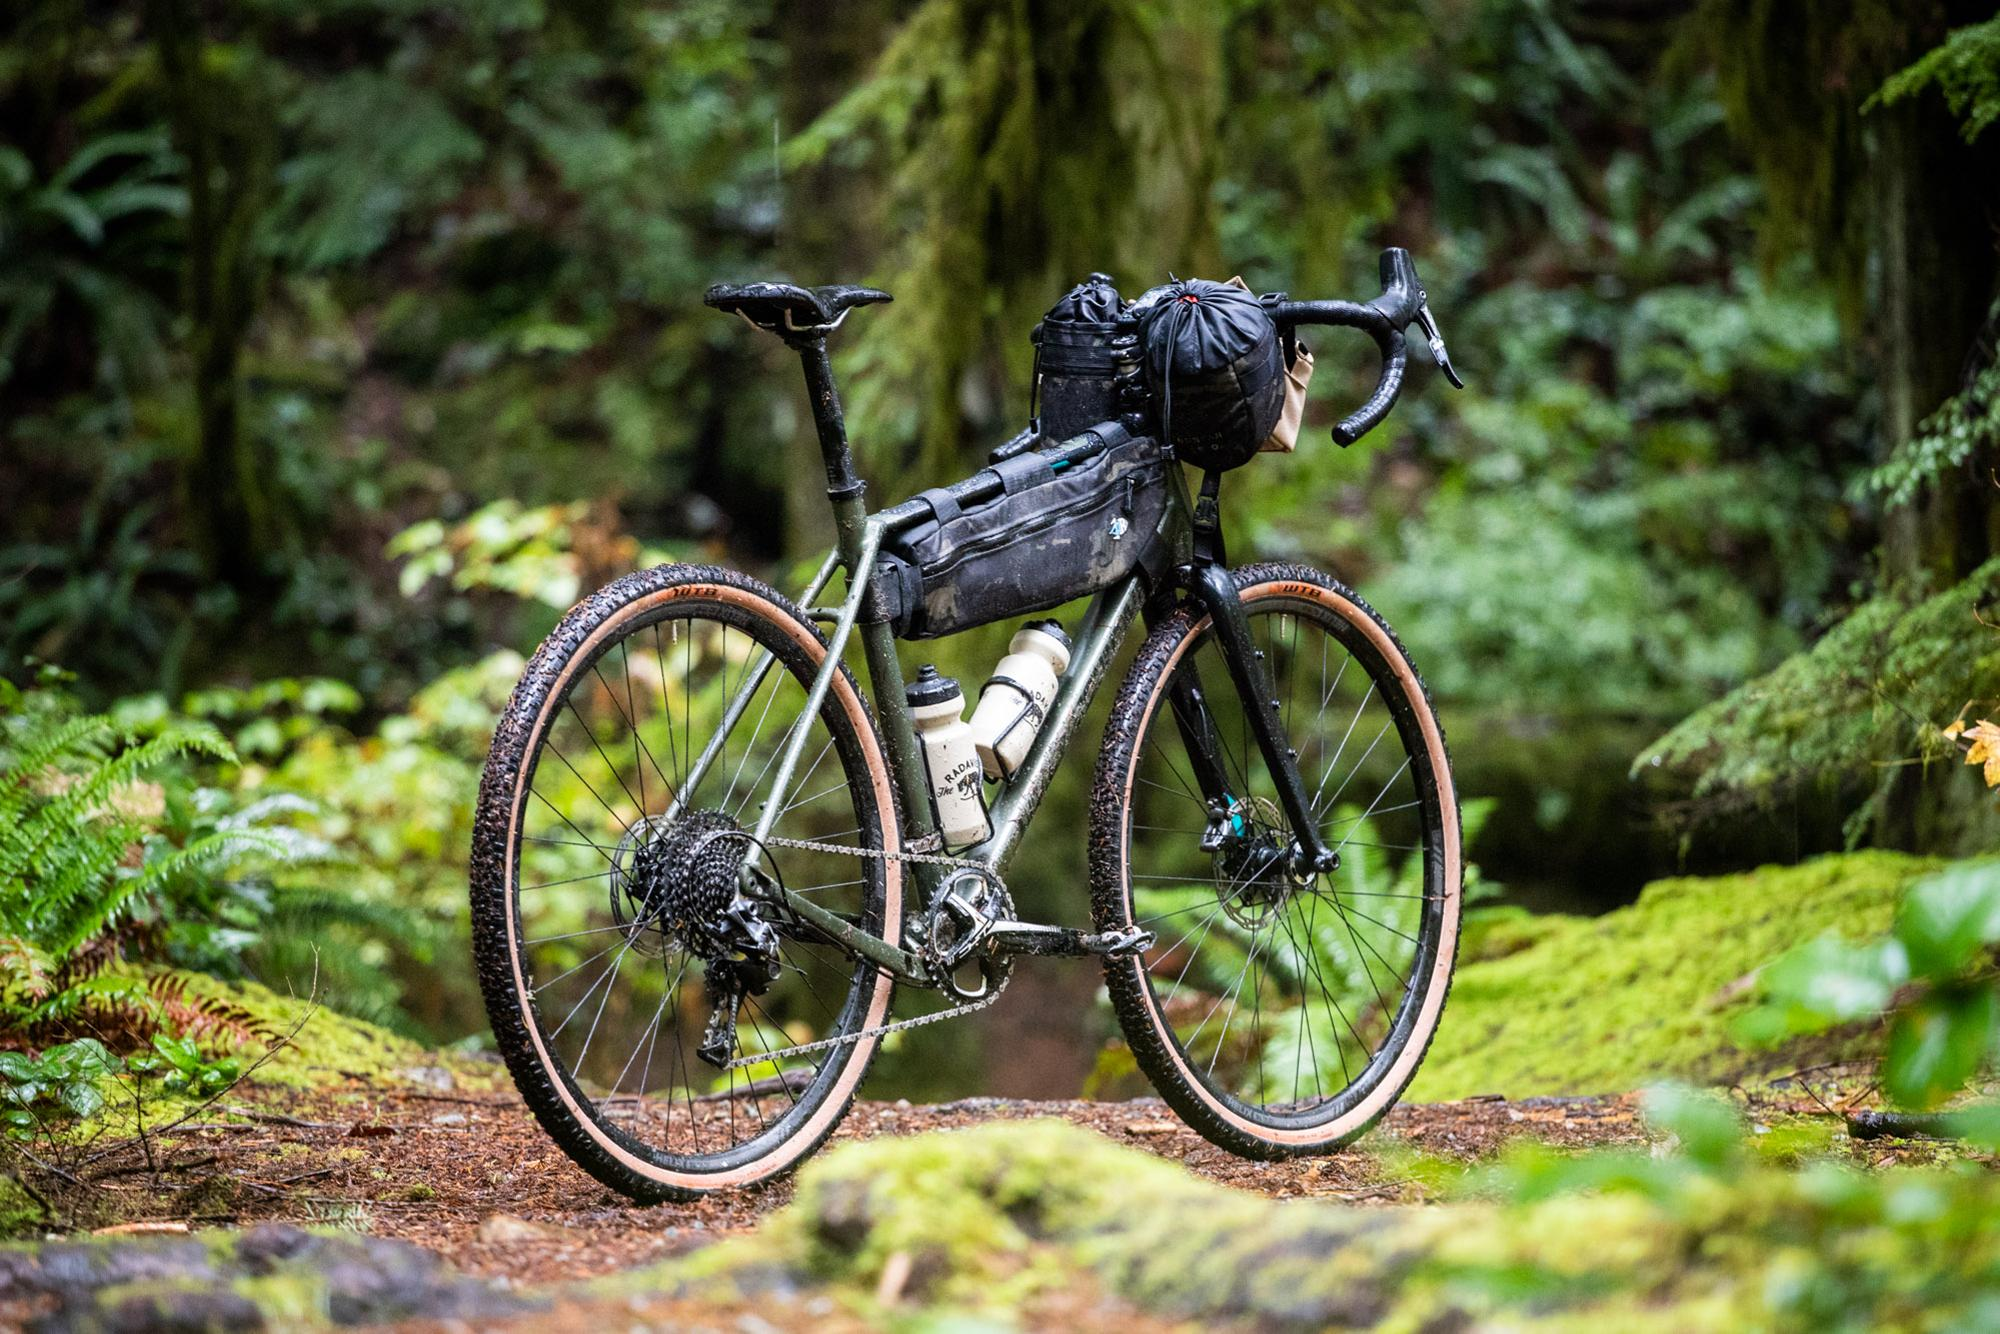 Beyond Mountain Bikes with the Rocky Mountain Solo 70 – Morgan Taylor